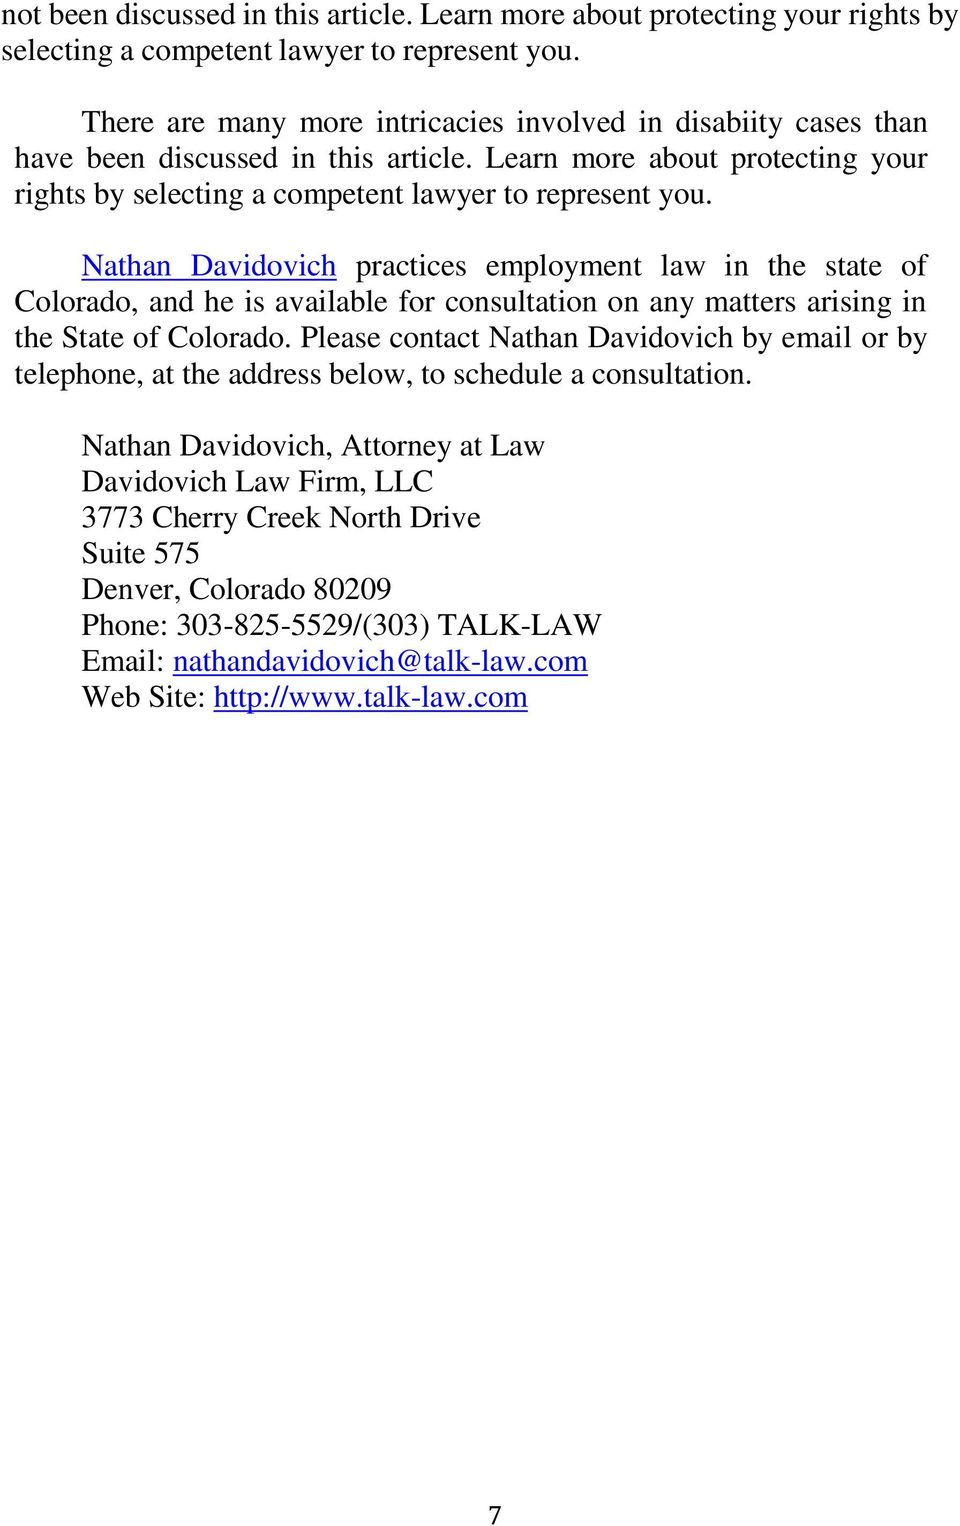 Nathan Davidovich practices employment law in the state of Colorado, and he is available for consultation on any matters arising in the State of Colorado.